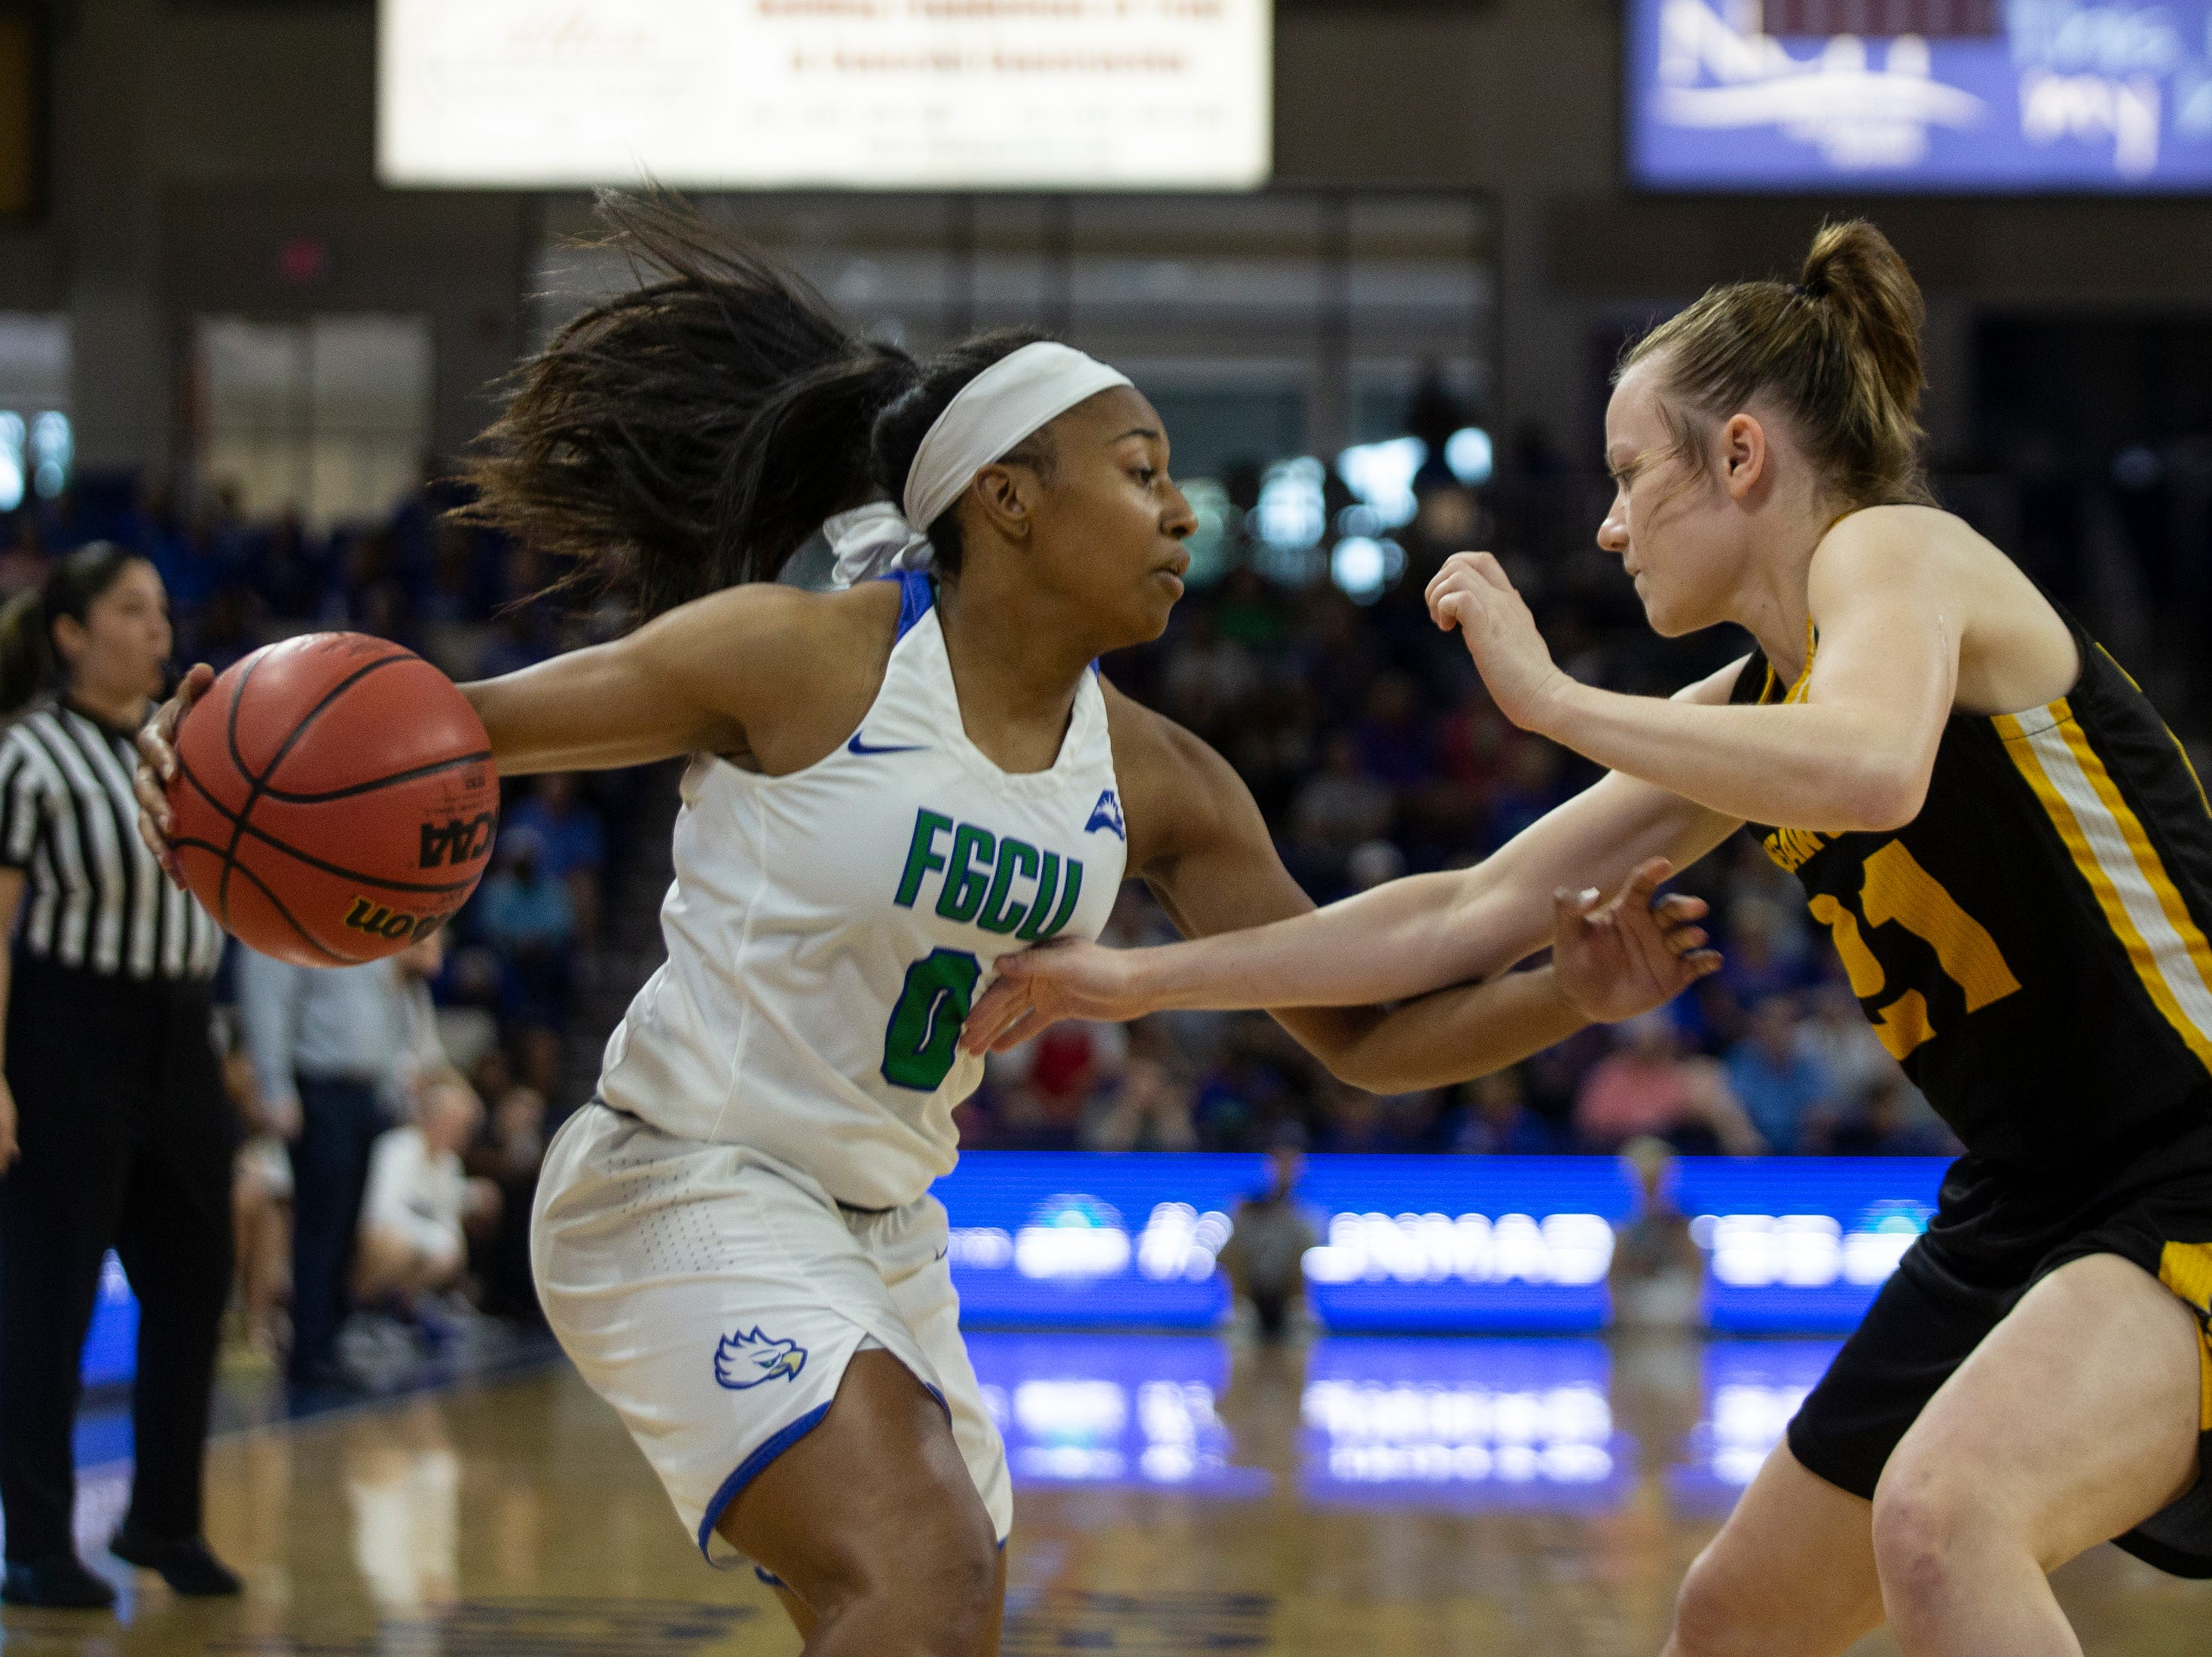 Florida Gulf Coast University'sDavion Wingate dribbles the ball against game against Kennesaw State'sBreanna Hoover during their game on Wednesday, March 13, 2019, at Florida Gulf Coast University's Alico Arena.